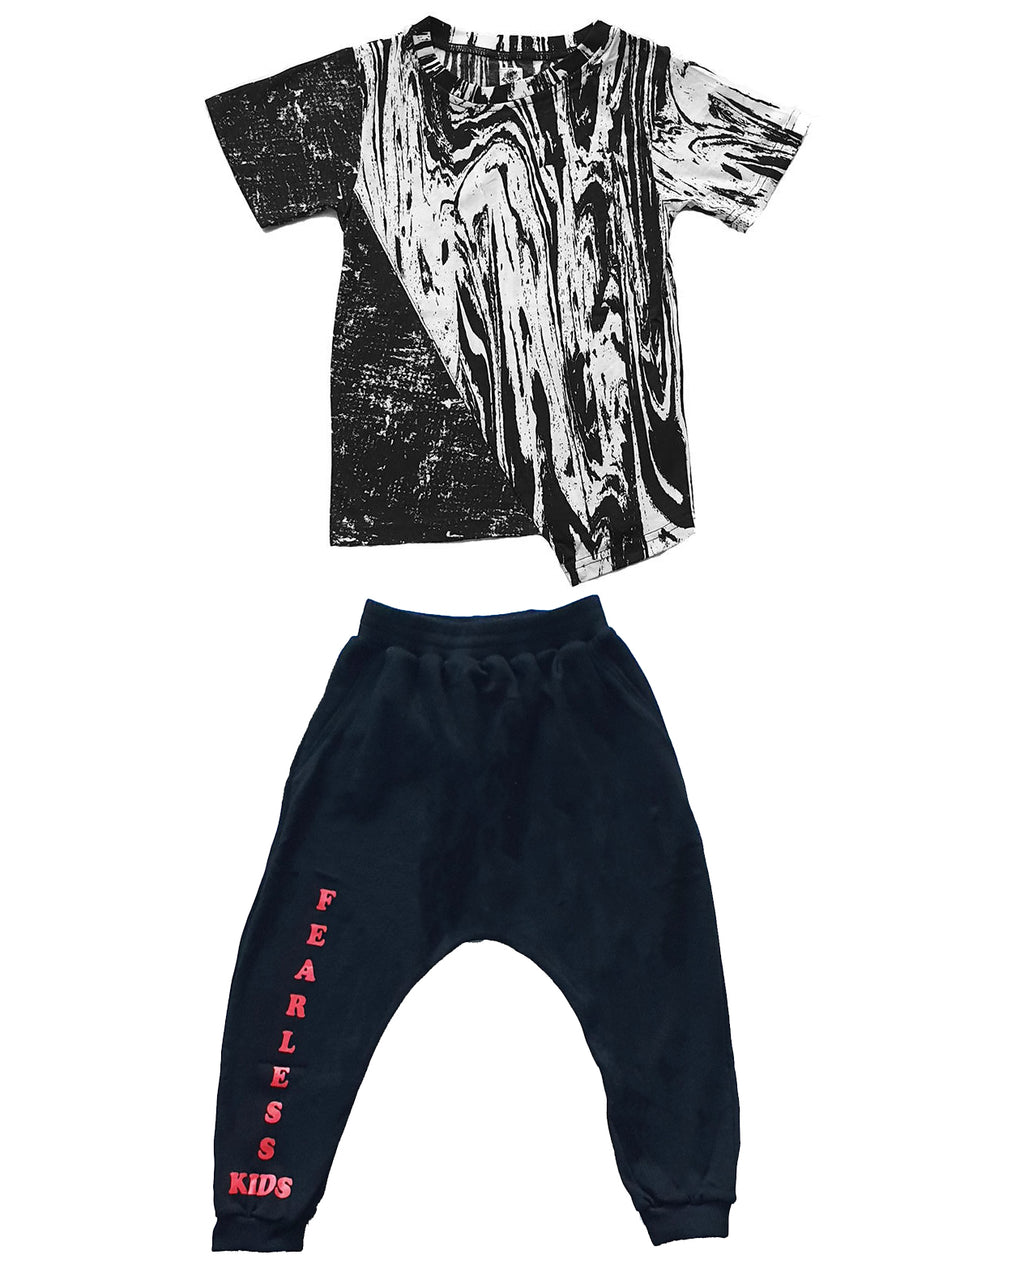 Waves Mish Mash and Fearless Track Pants Set - Roses & Rhinos